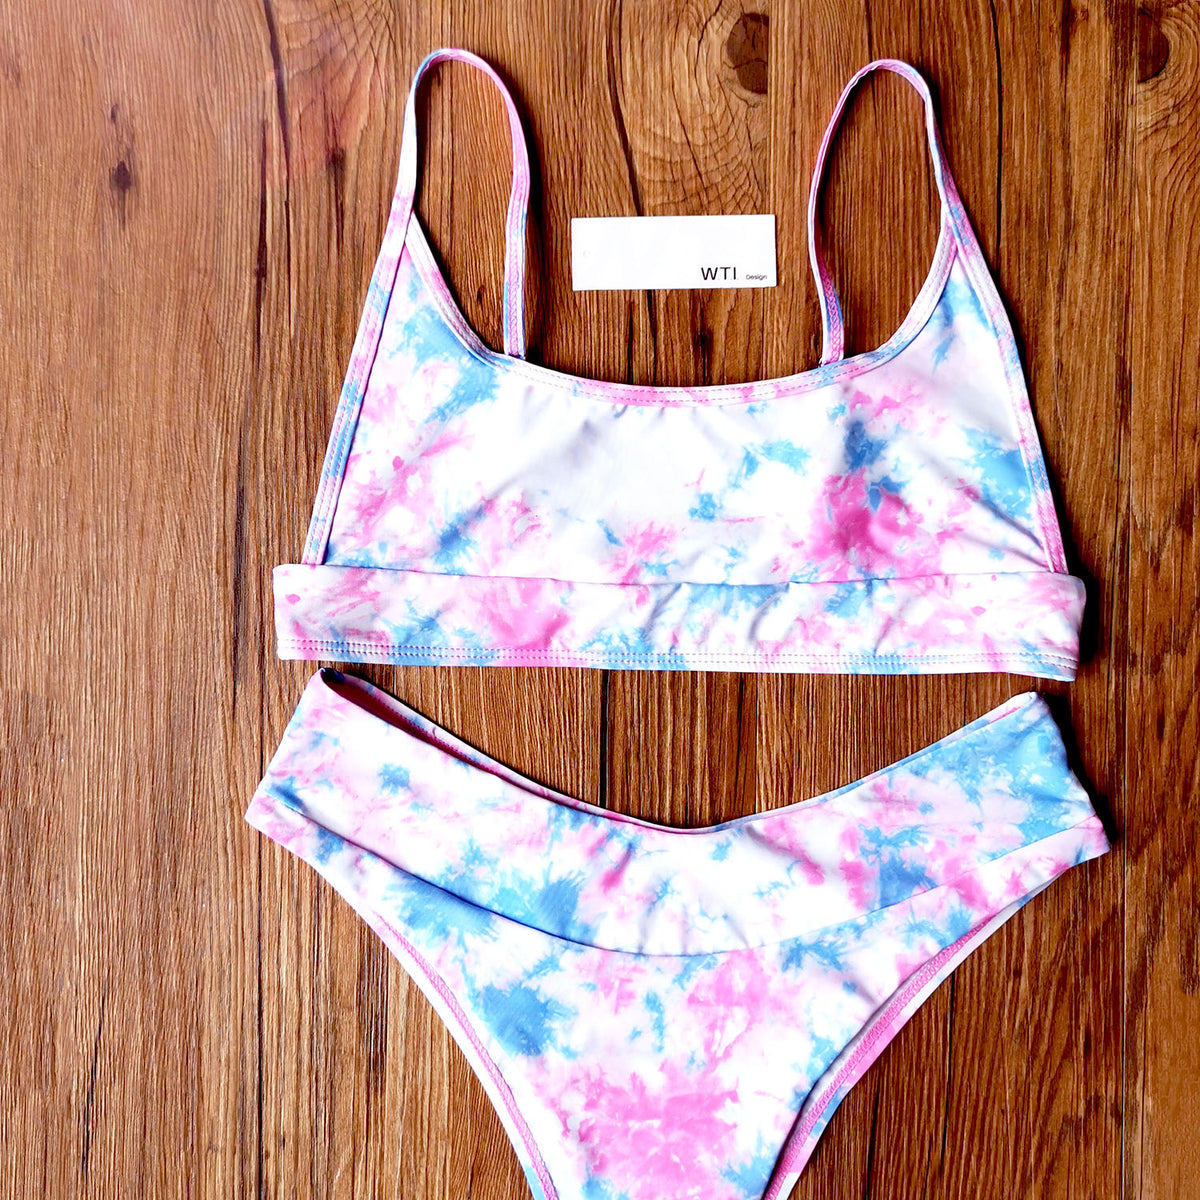 Tie Dye Crop Top Bikini Swimsuit - worthtryit.com